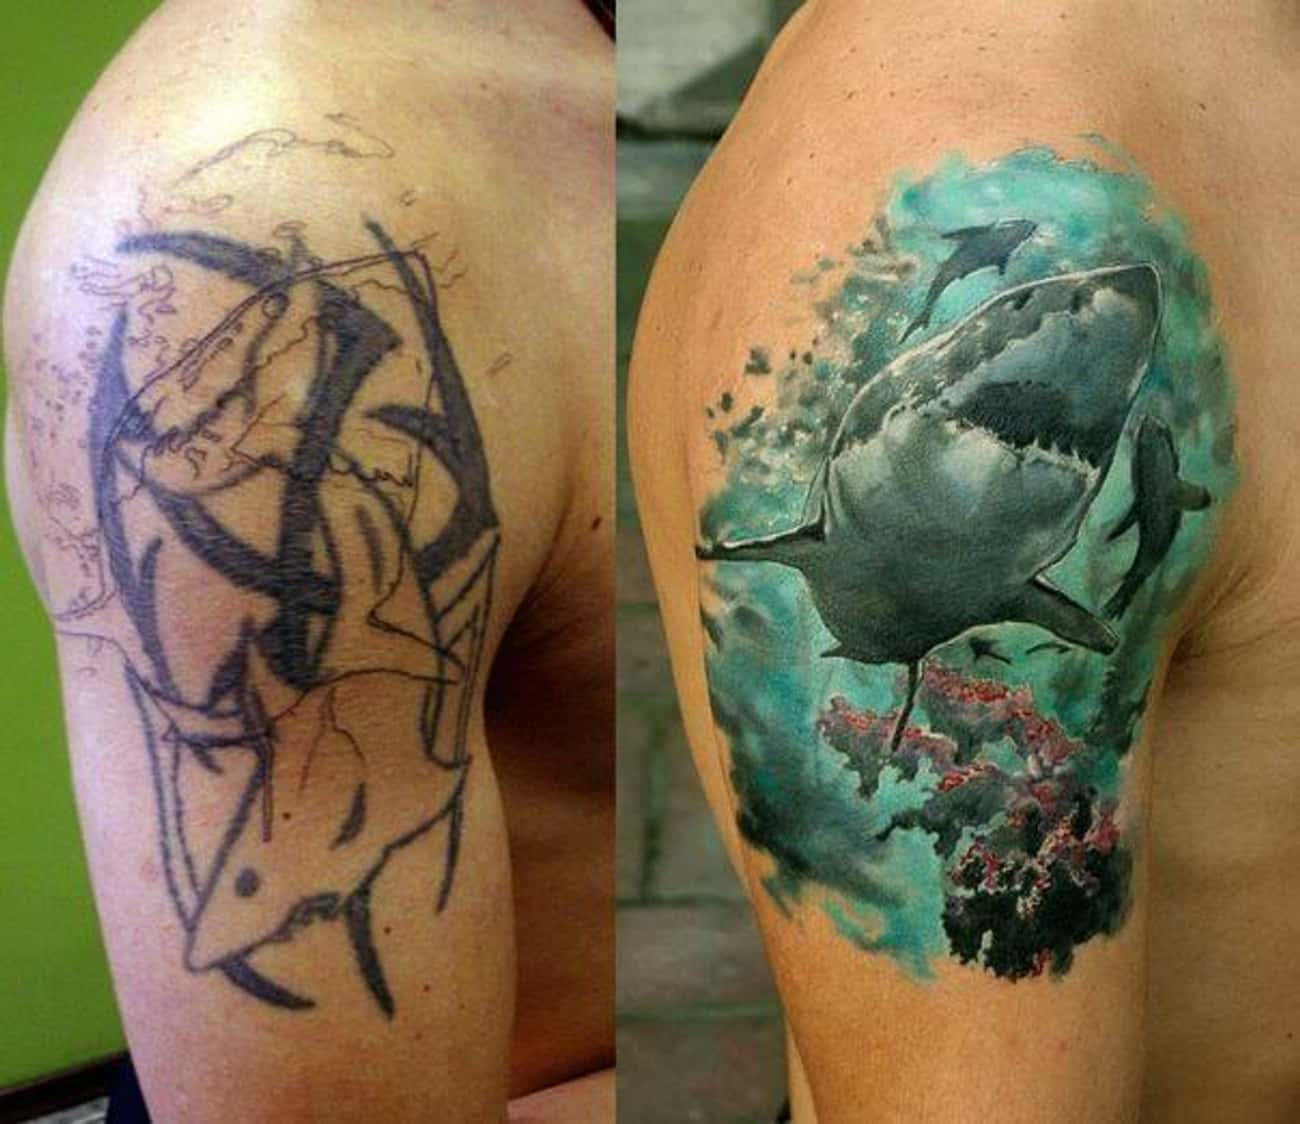 Tribal Shark Gets an Epic Make is listed (or ranked) 1 on the list 44 Genius Ideas for Cover Up Tattoos